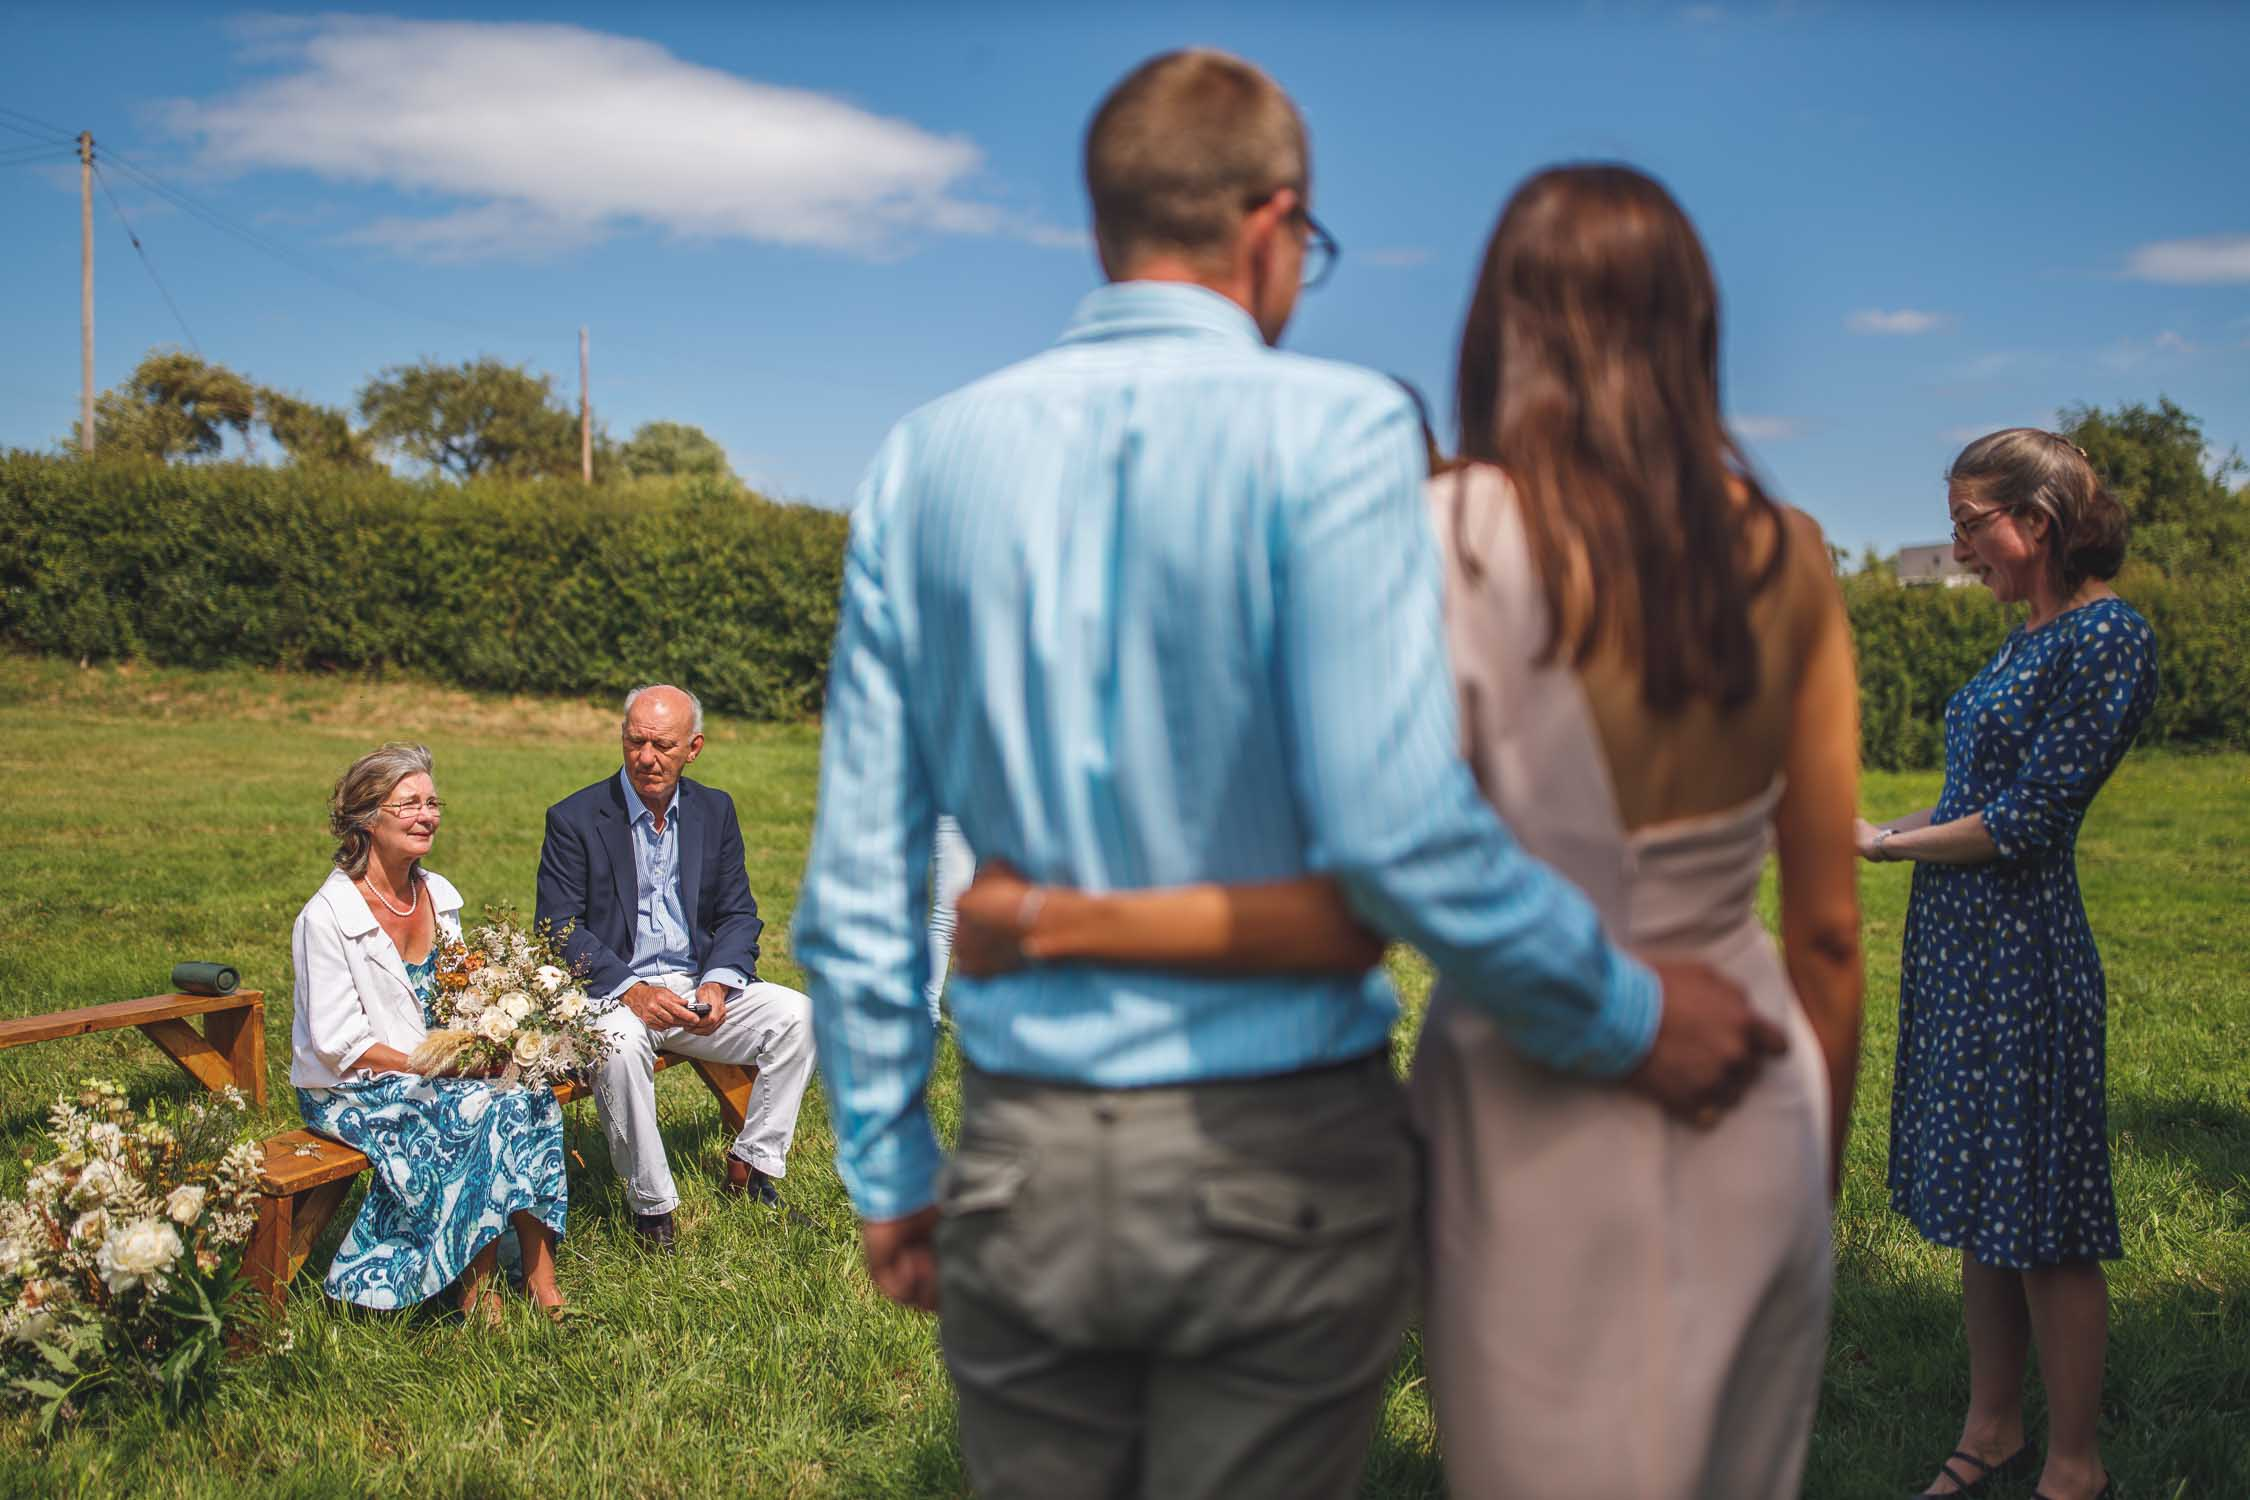 The Orchard at Munsley, Wedding Photography, Wedding at the Orchard at Munsley, Herefordshire wedding photographer, wedding photography  in Herefordshire